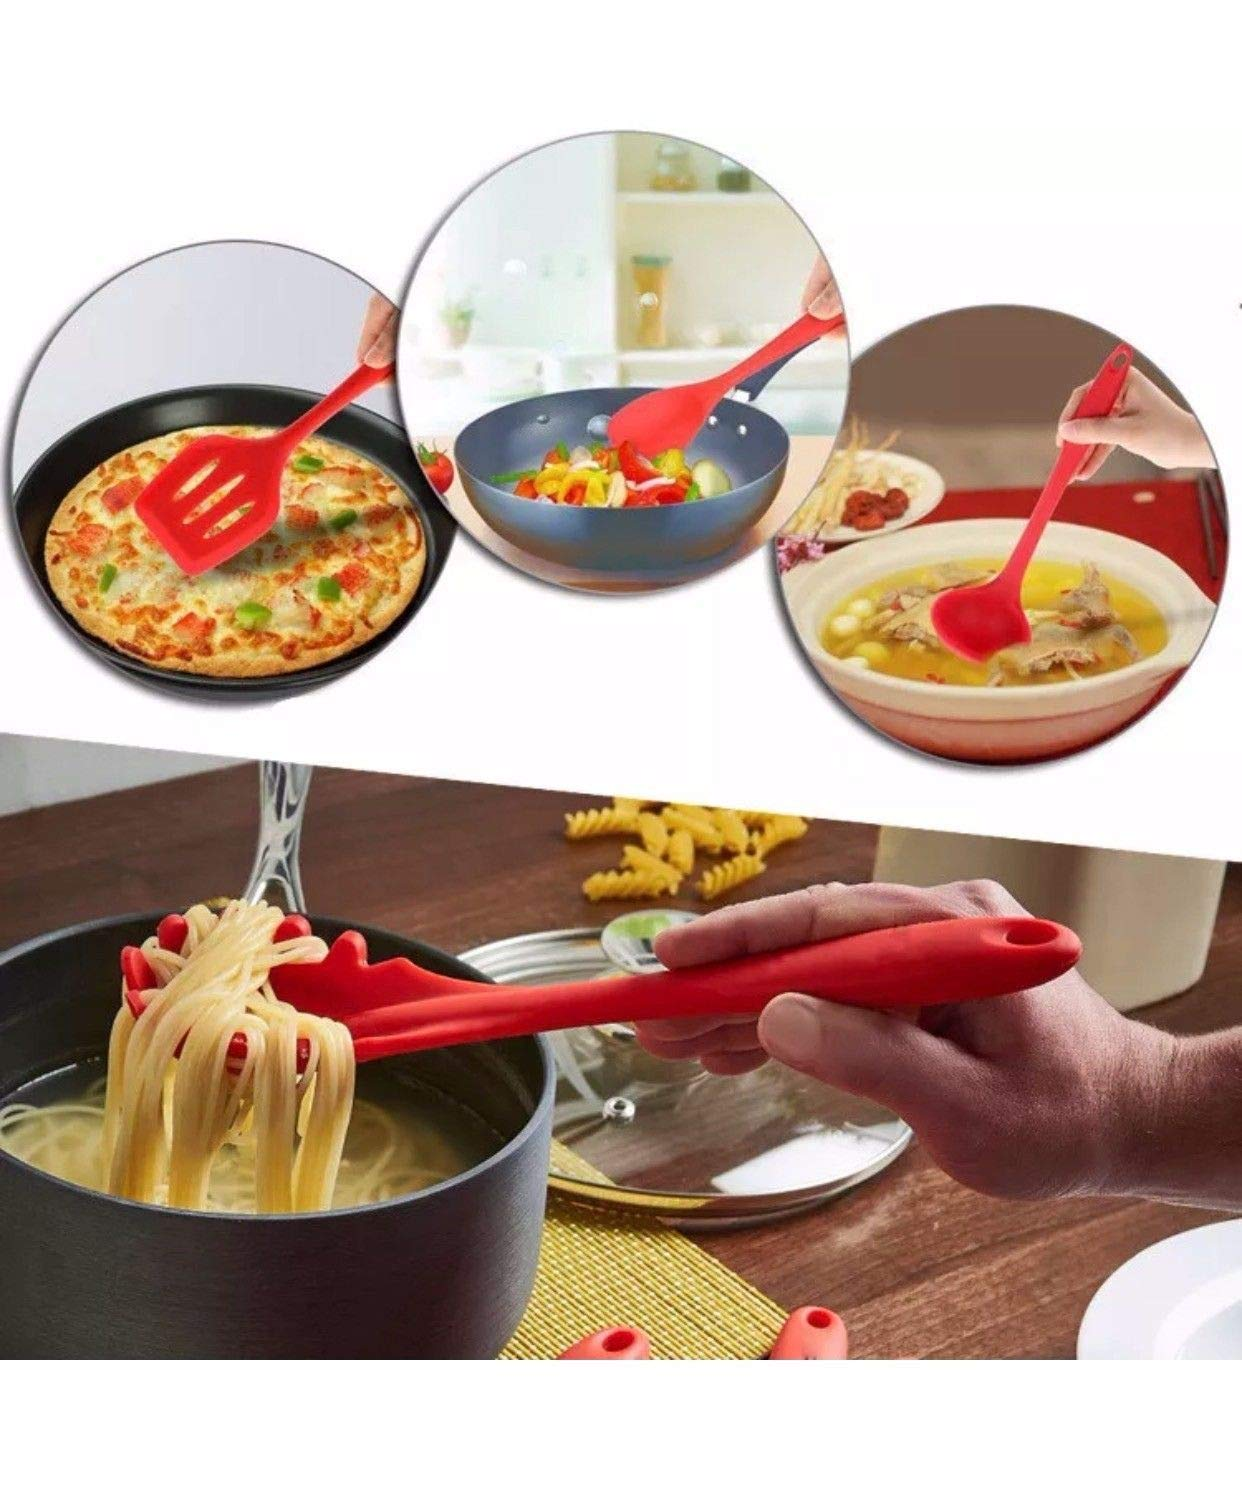 Kitchen Utensils, Silicone Heat-Resistant Non-Stick Kitchen Utensil Set Cooking Tools 10+1 Piece,Turner, Whisk, Spoon,Brush,spatula, Ladle Slotted turner Tongs Pasta Fork and Free Spoon Rest by iLuckyvision (Image #6)